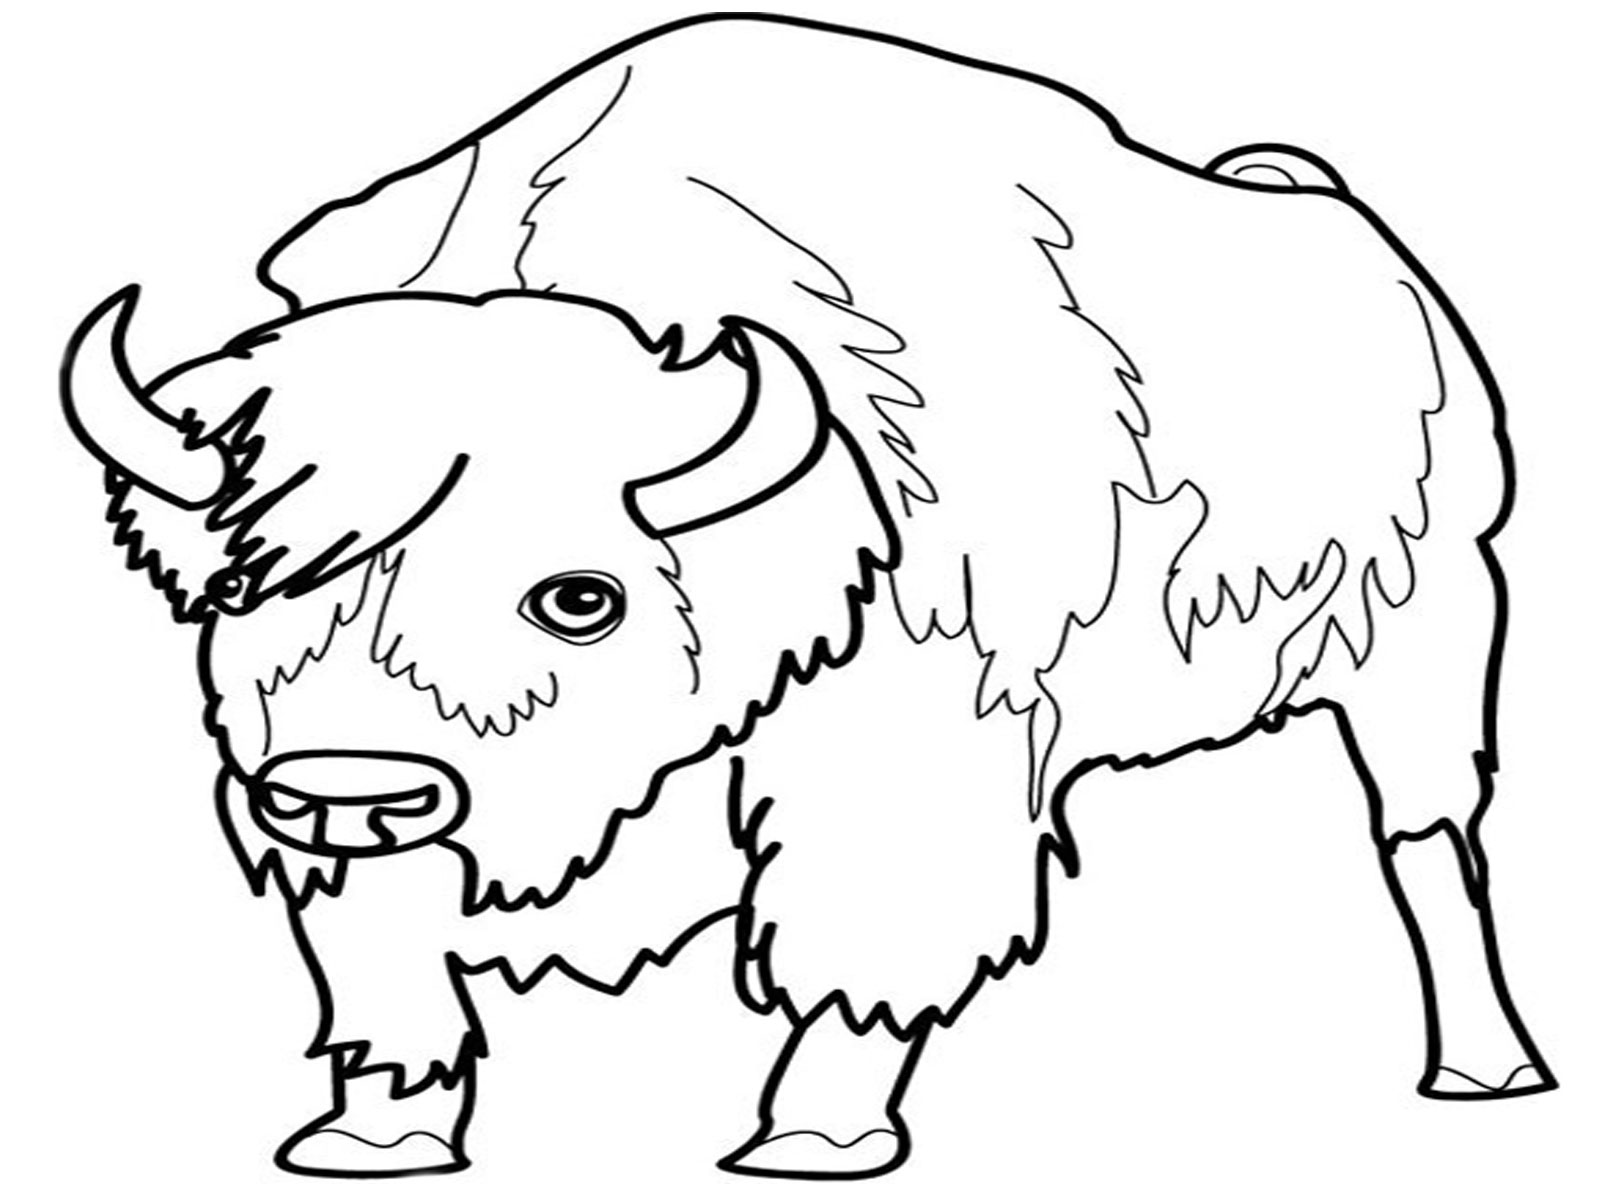 Bison Coloring Pages For Kids   Realistic Coloring Pages   free coloring pages animals realistic